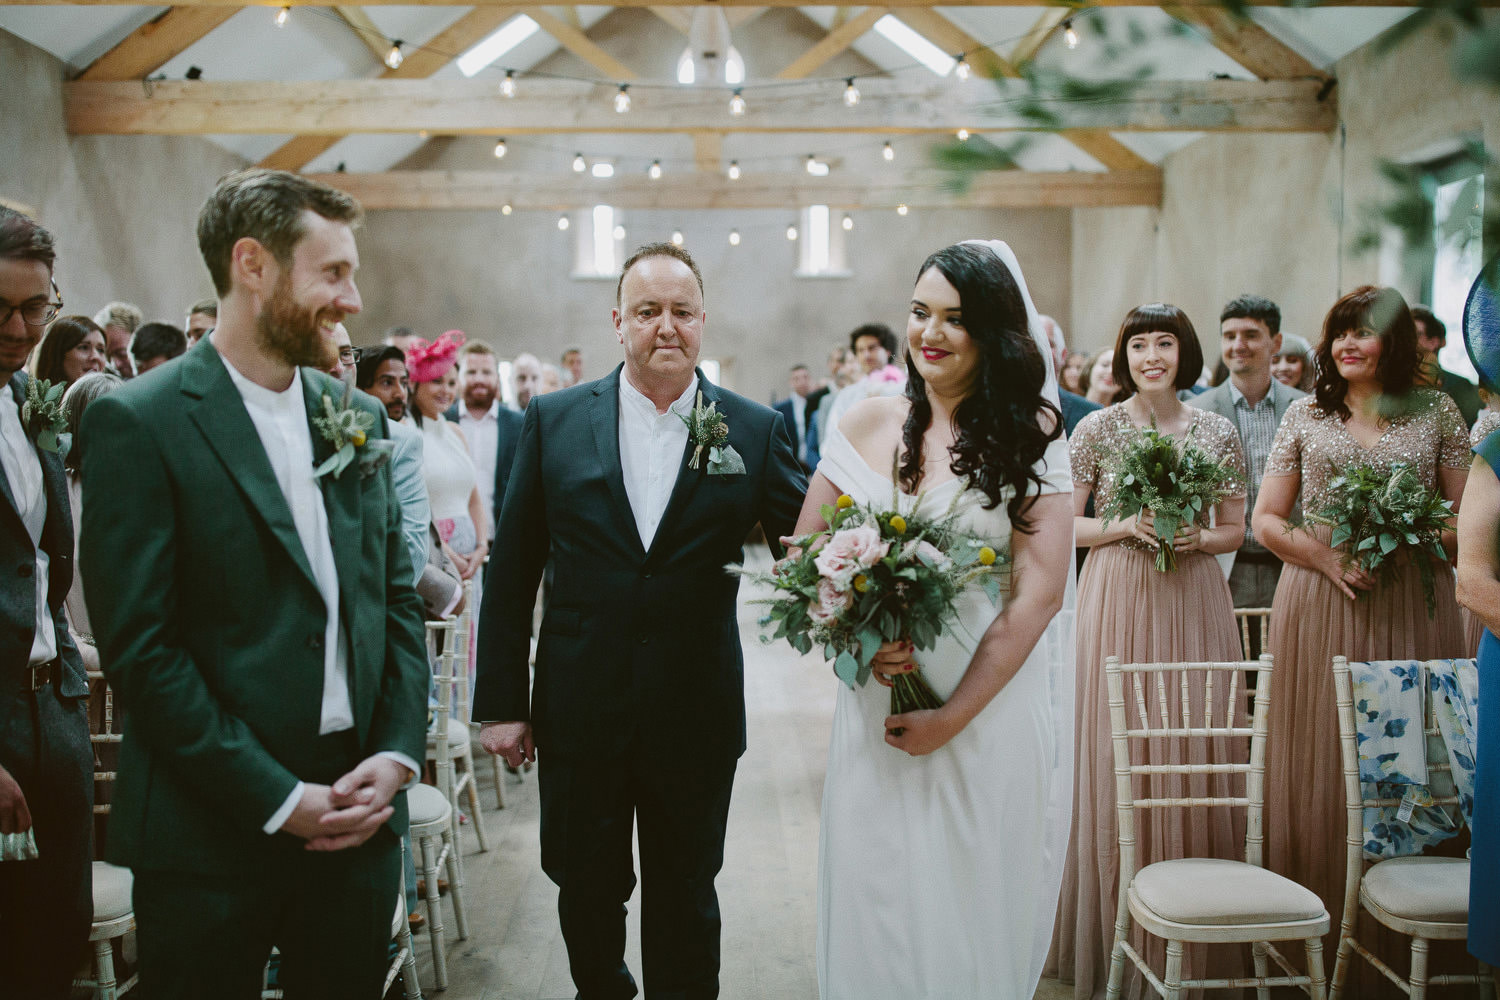 father walks with bride to front of ceremony while groom smiles